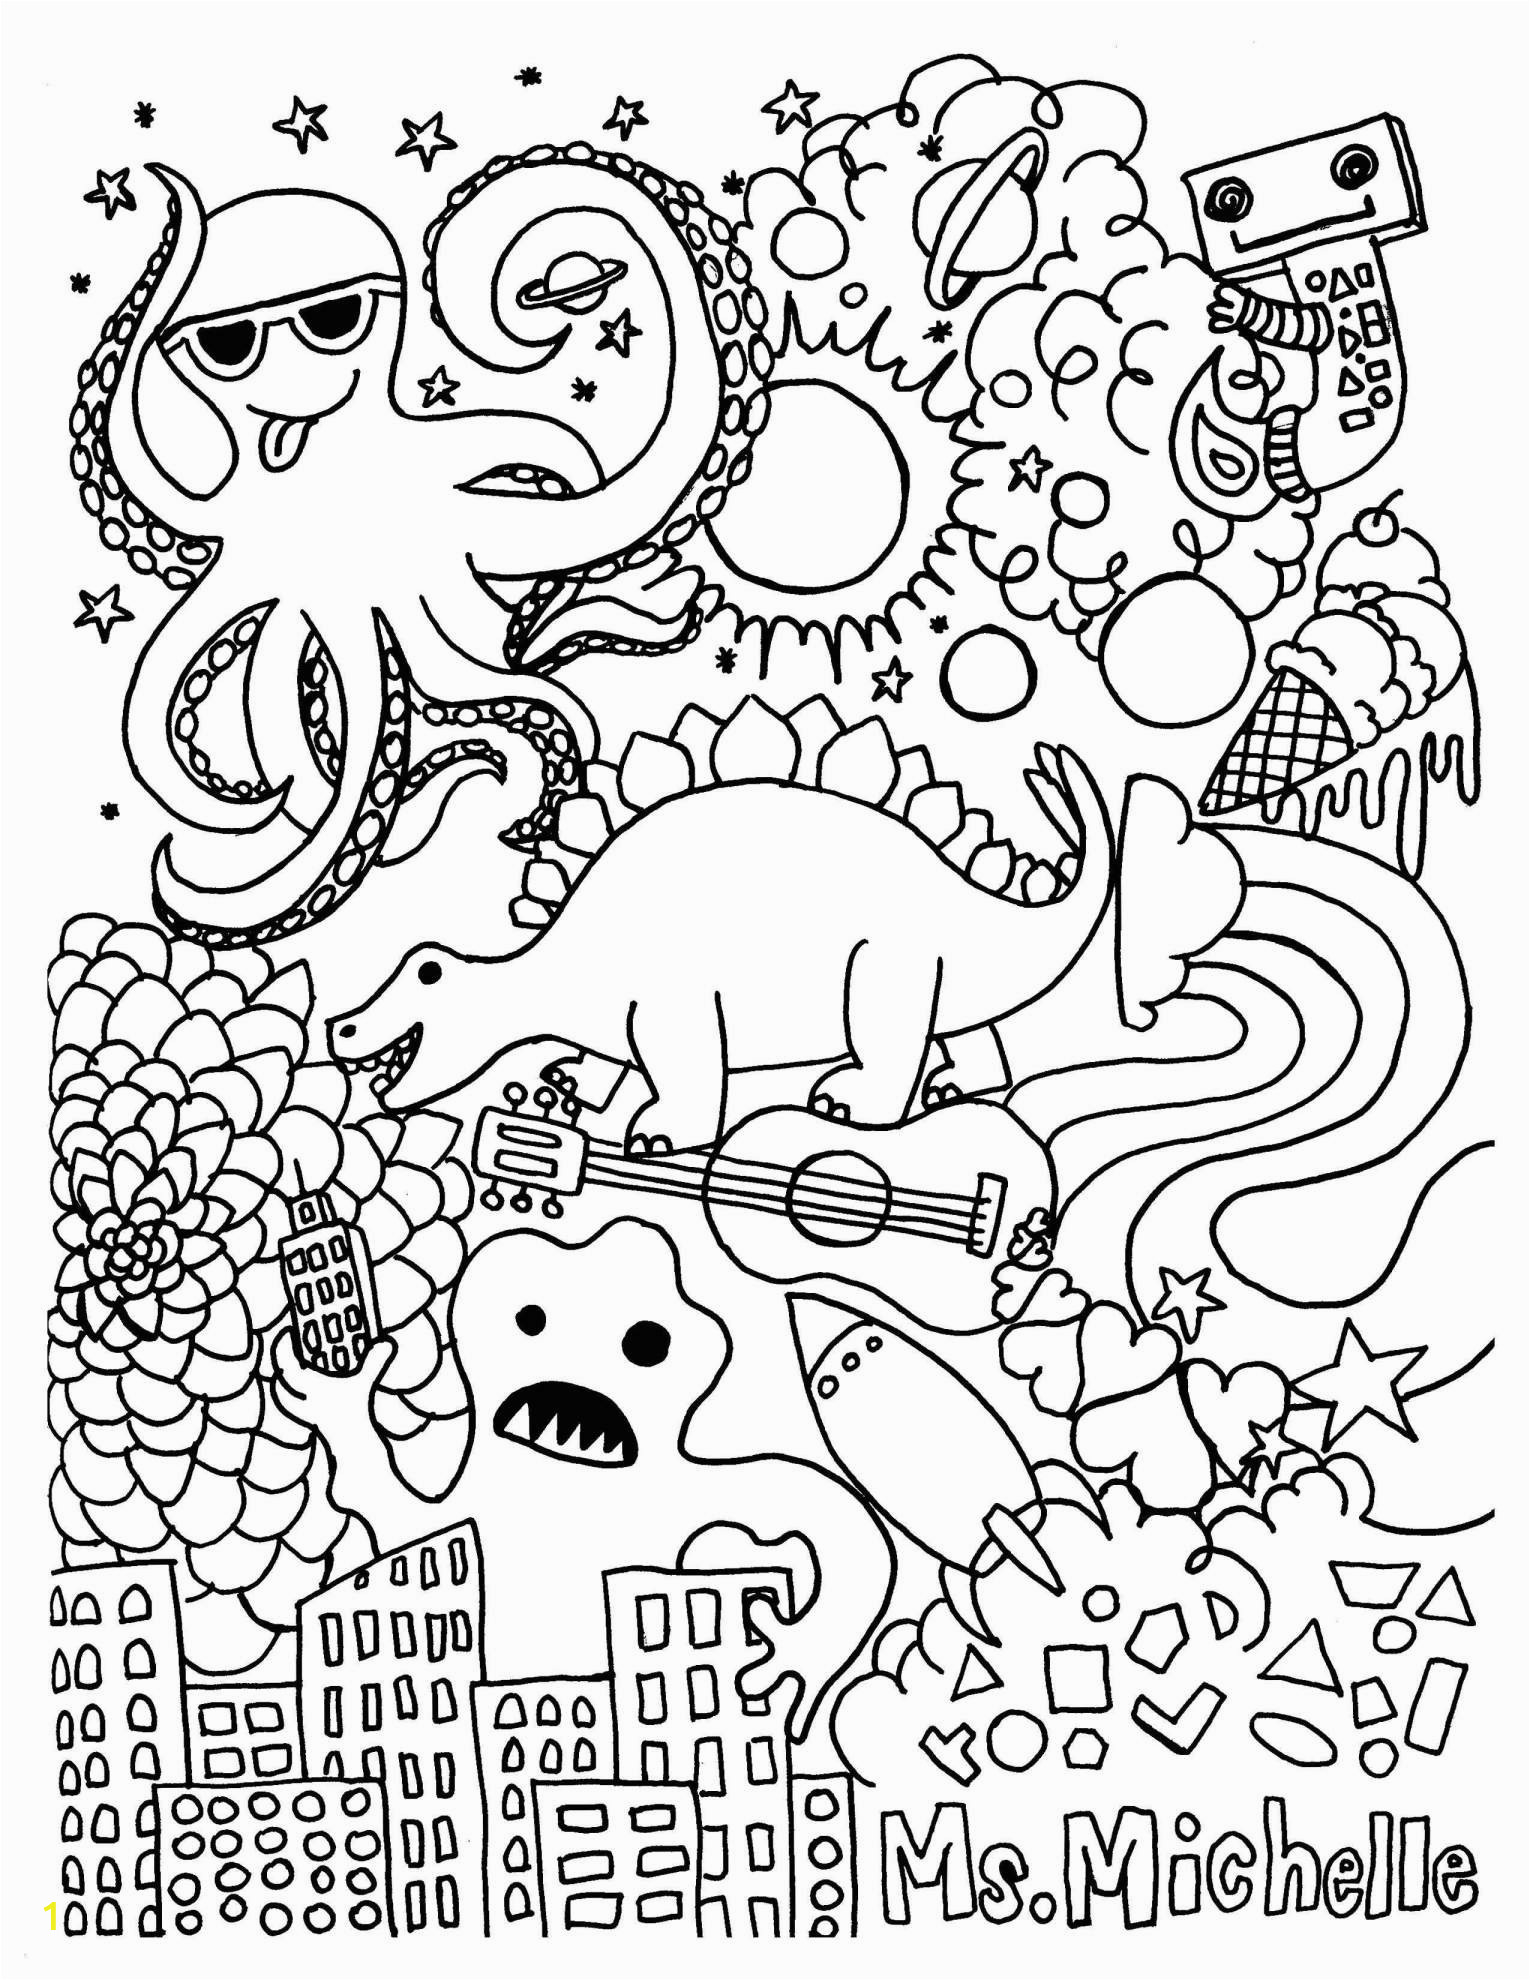 merry christmas coloring pages hard mandalaing harry potter kit winter for kids pumpkin sheet fun printable gruffalos child colouring sci fi book animal toddlers page